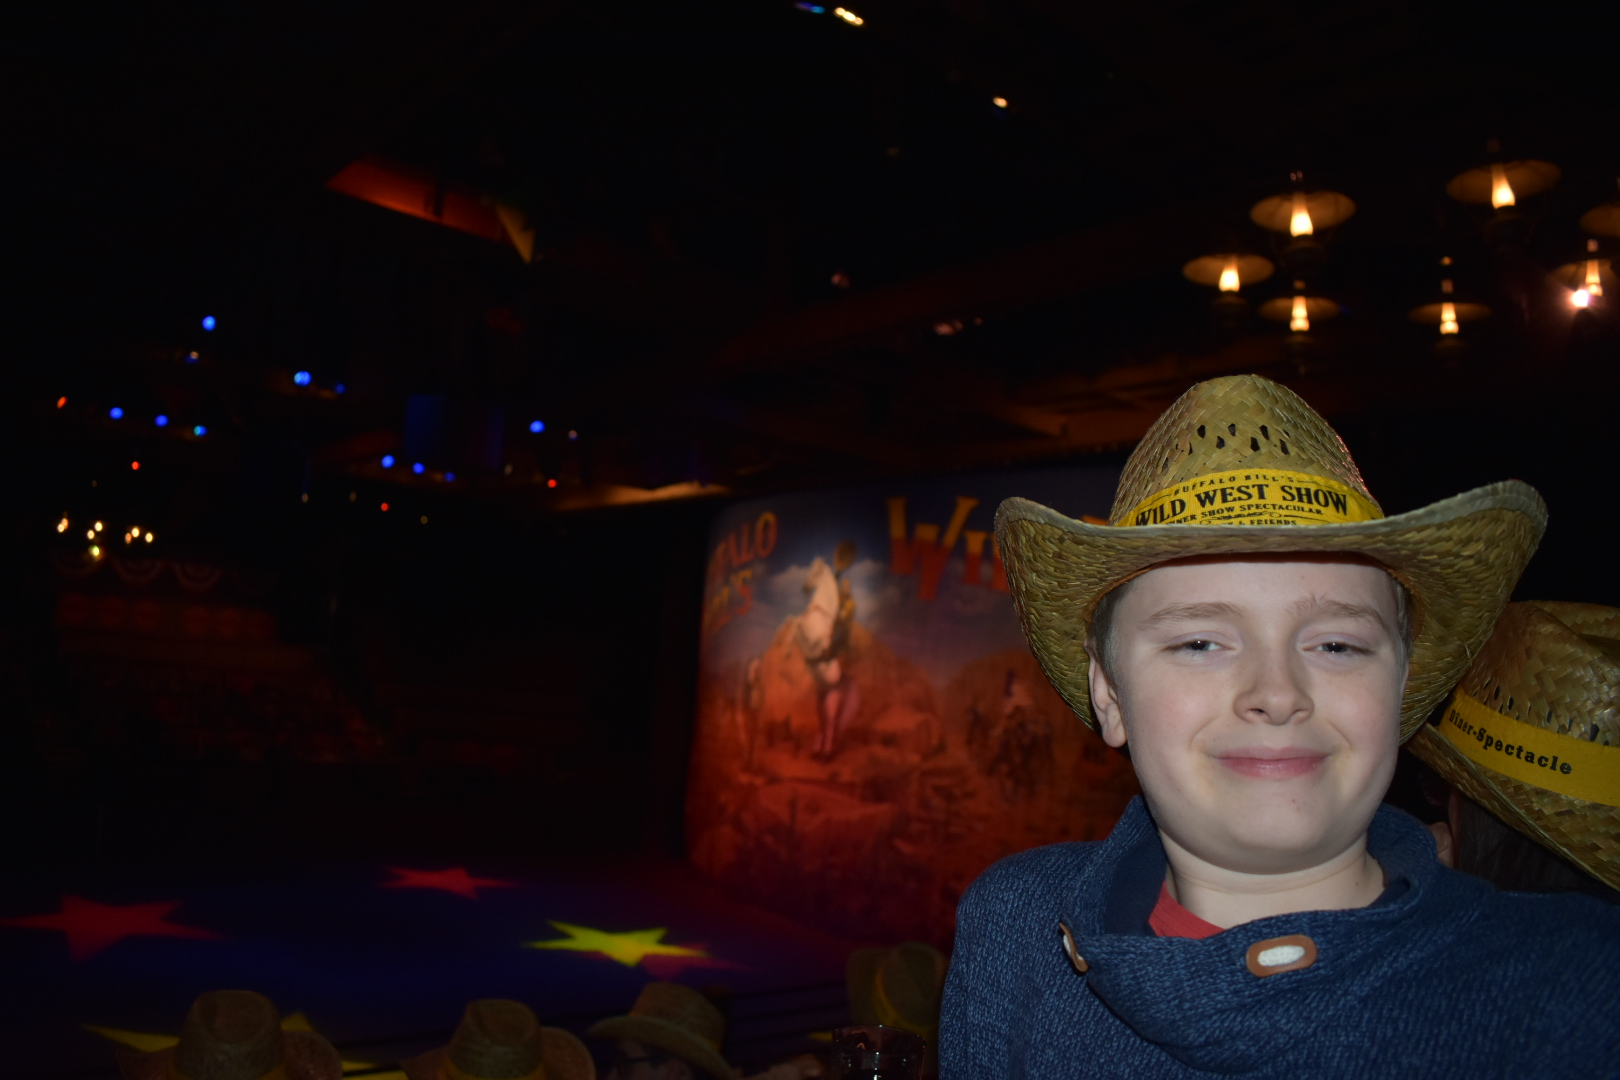 Buffalo Bill s Wild West Show with Mickey and Friends is located in The  Disney Village at Disneyland Paris. You can pay or use Premium Half Board  vouchers ... deeb6847323d